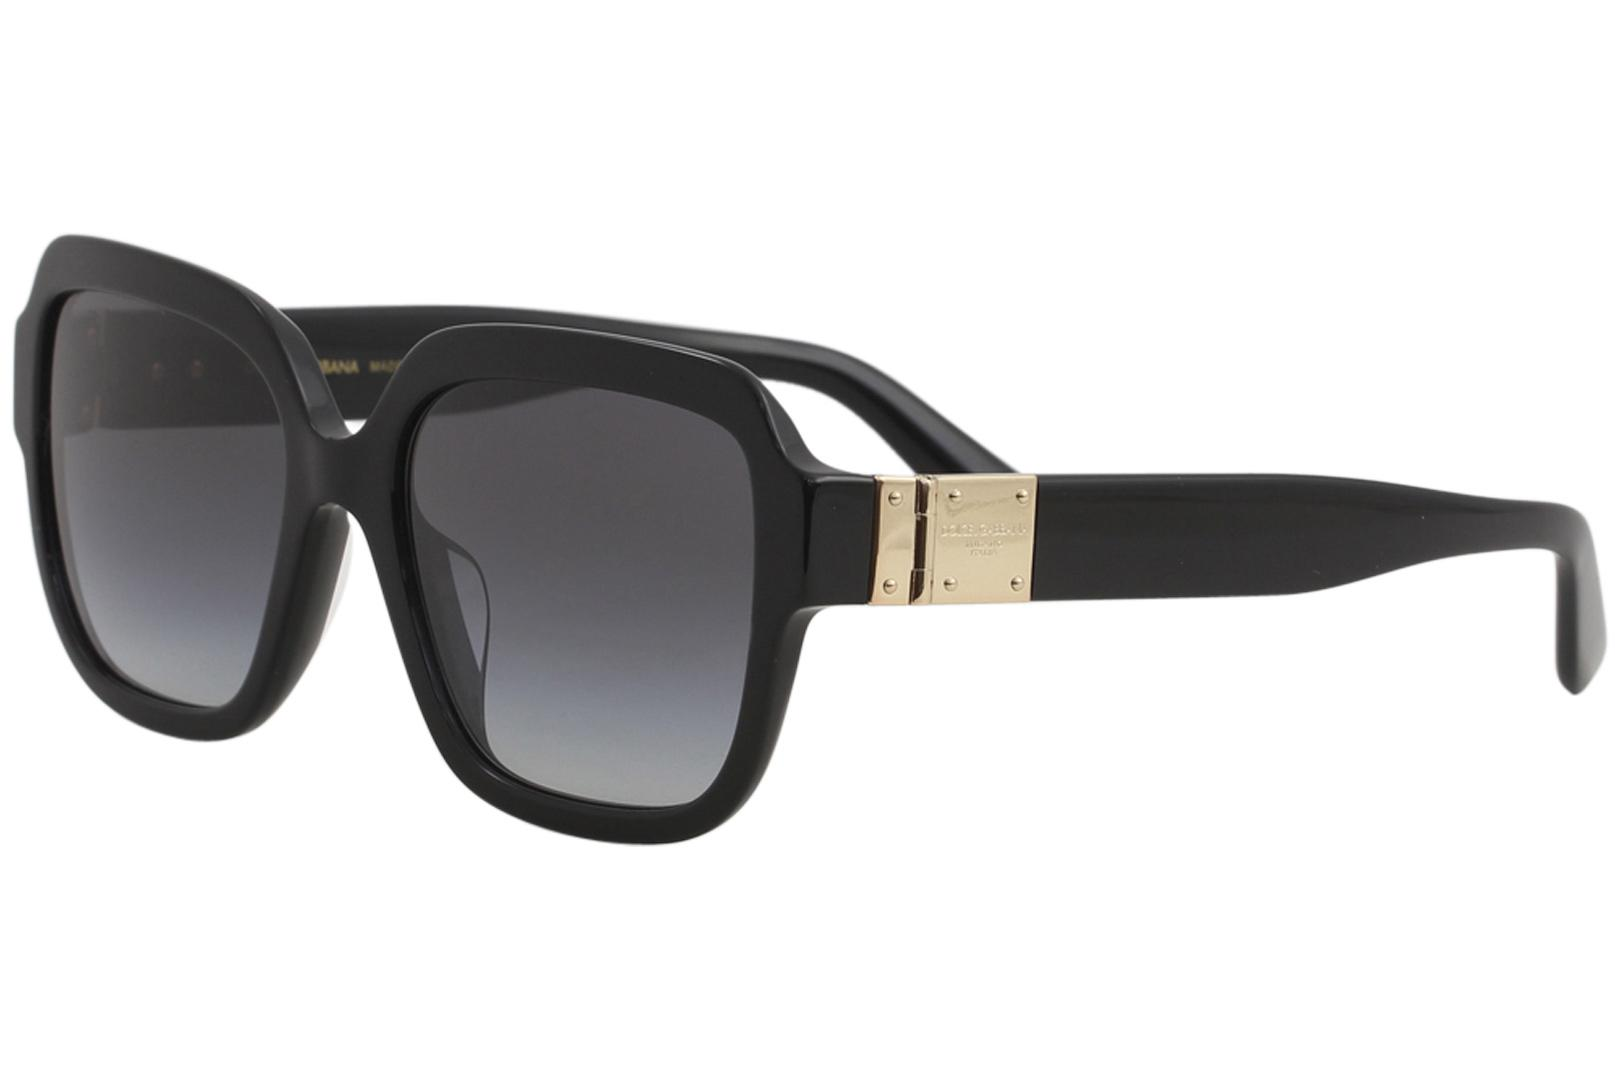 ab510426855e Dolce   Gabbana Women s D G DG4336F DG 4336F Fashion Square Sunglasses by  Dolce   Gabbana